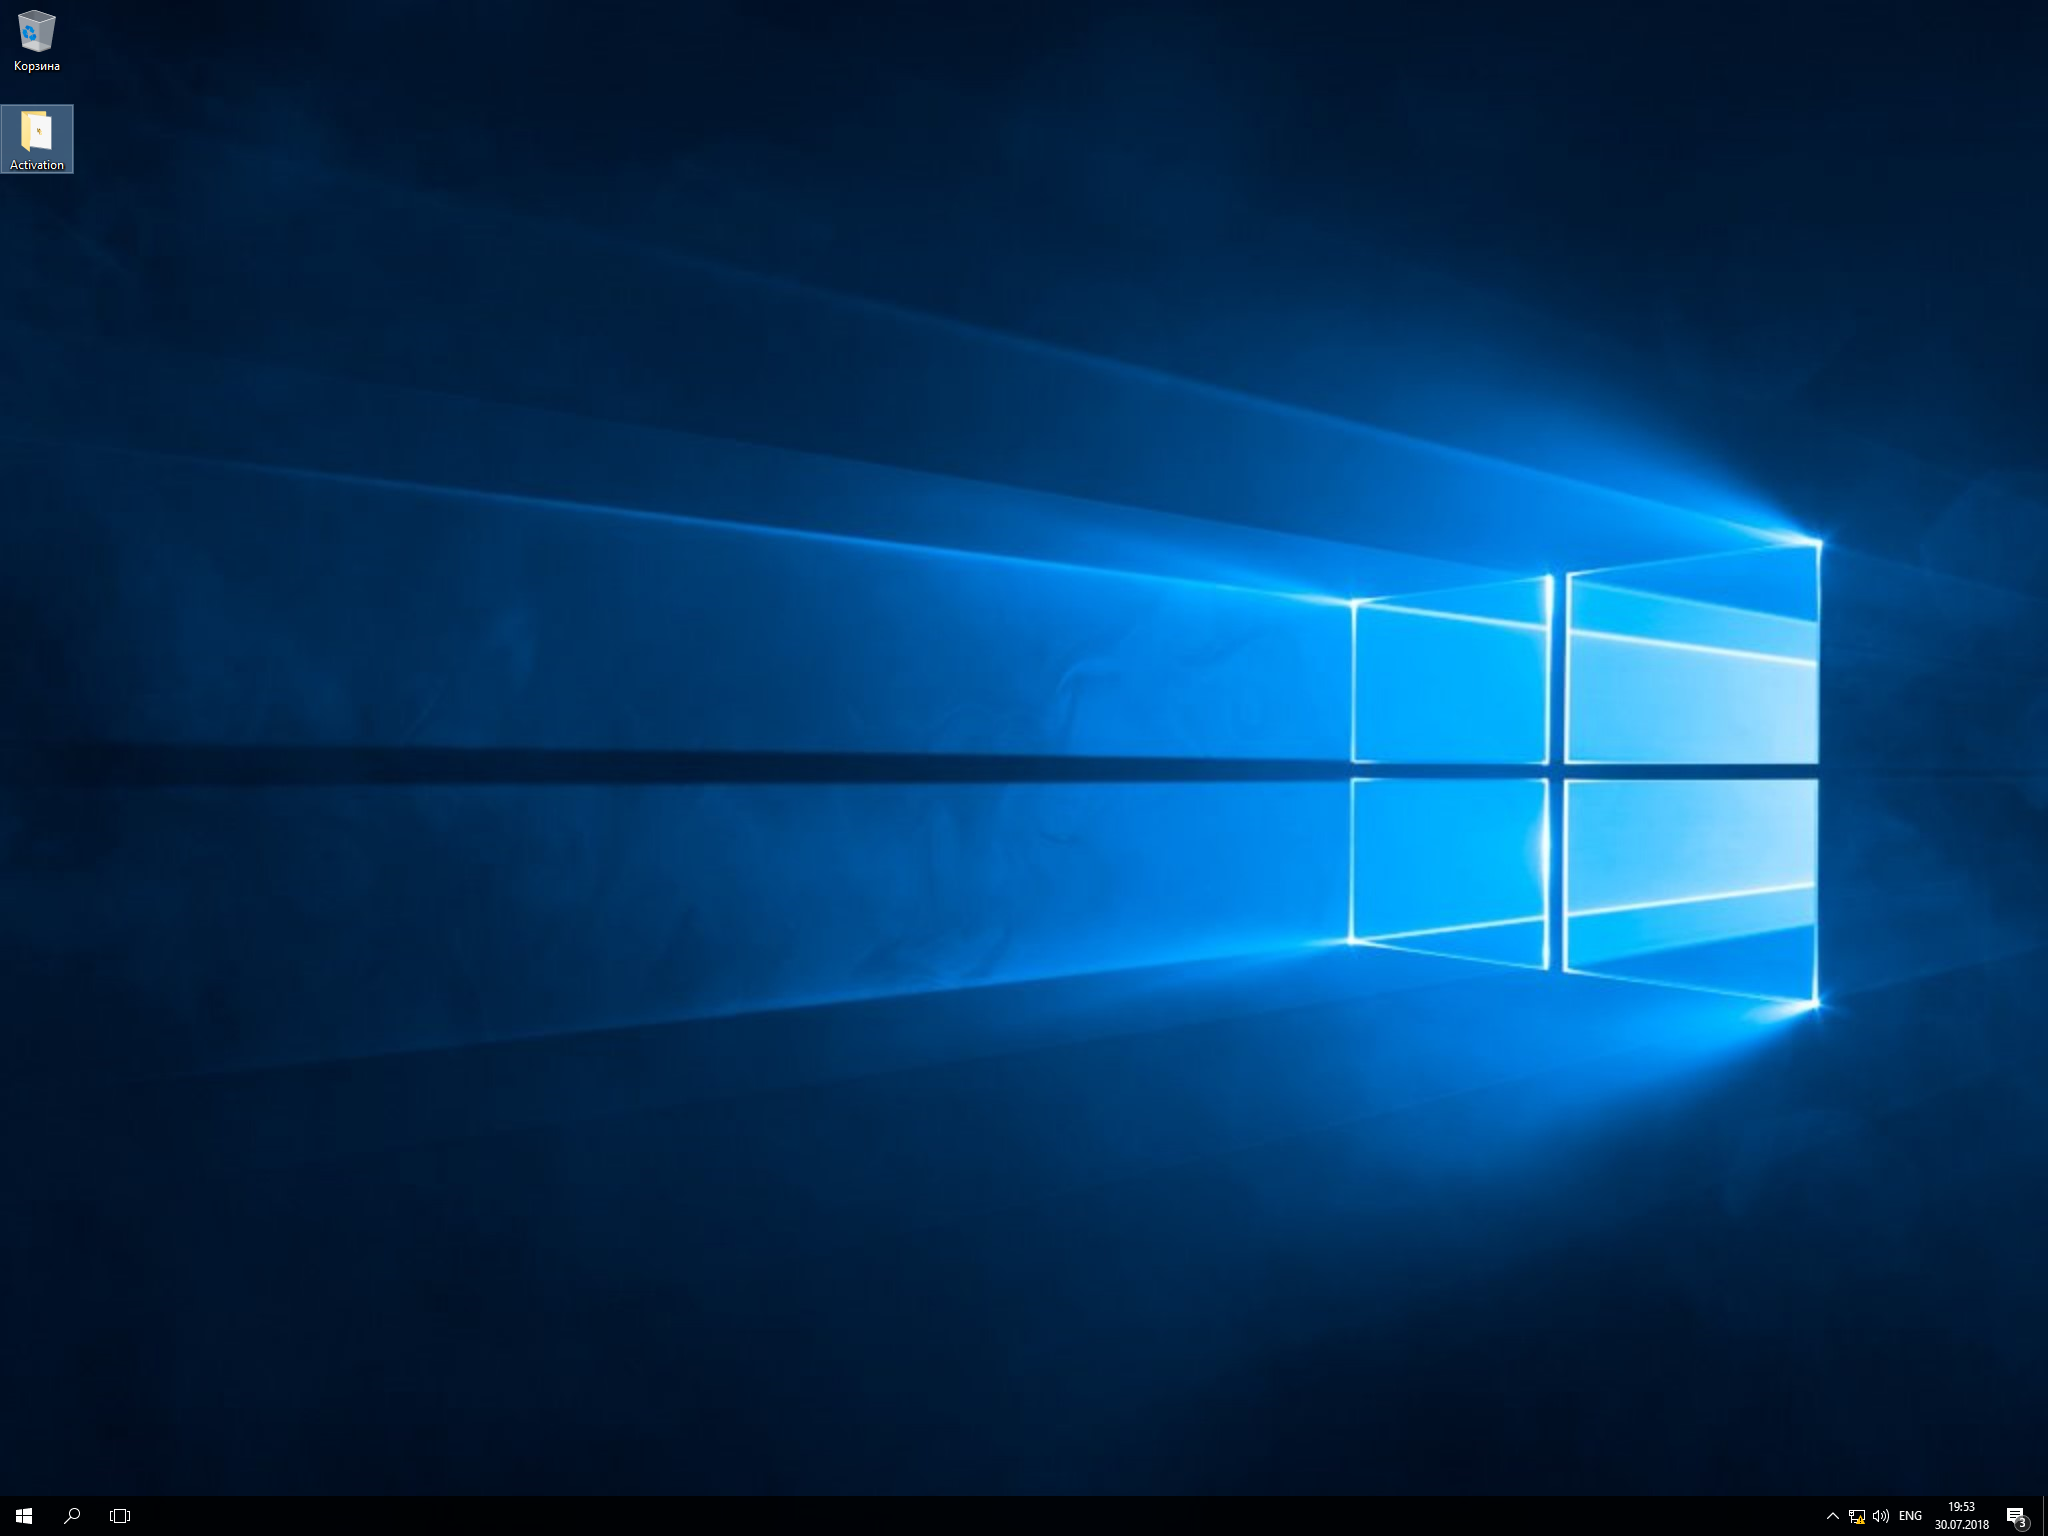 windows 10 ltsb by mandarinstar 10 0 14393 2395  u00bb windows